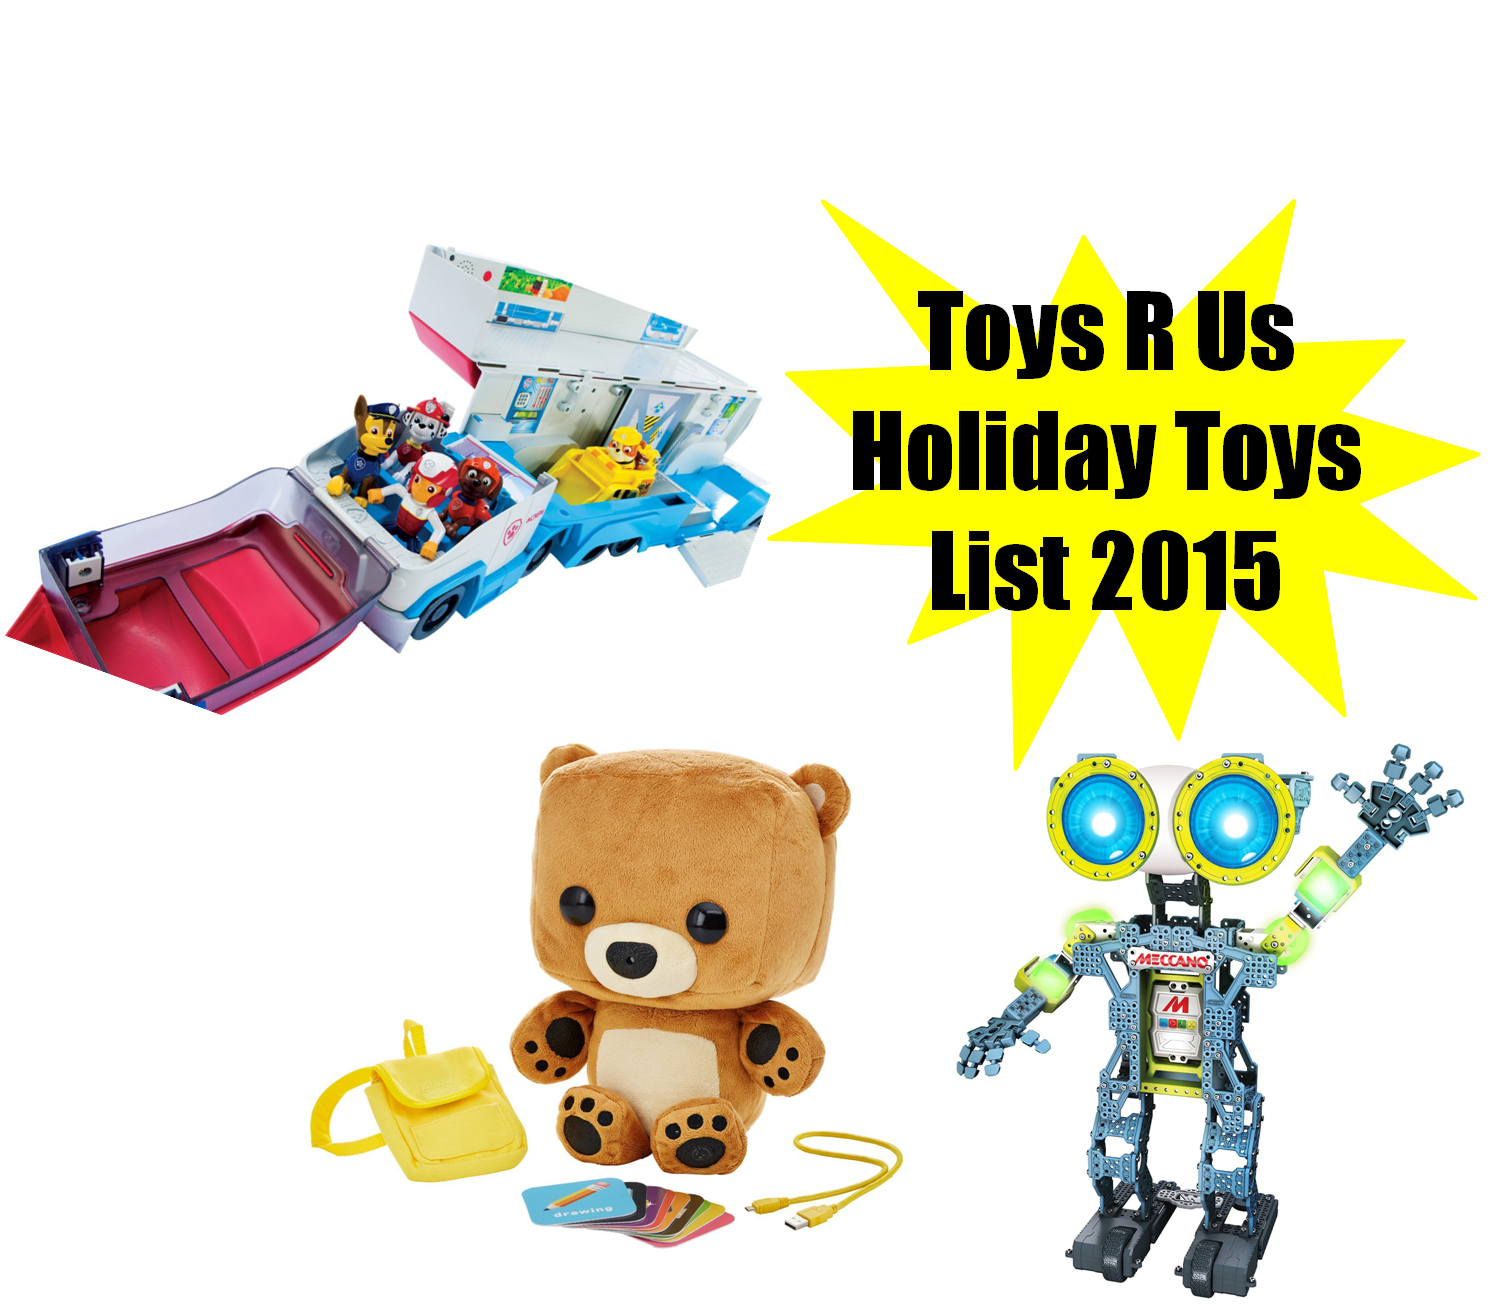 Toys R Us Christmas : Top christmas gifts list toys r us holiday hot